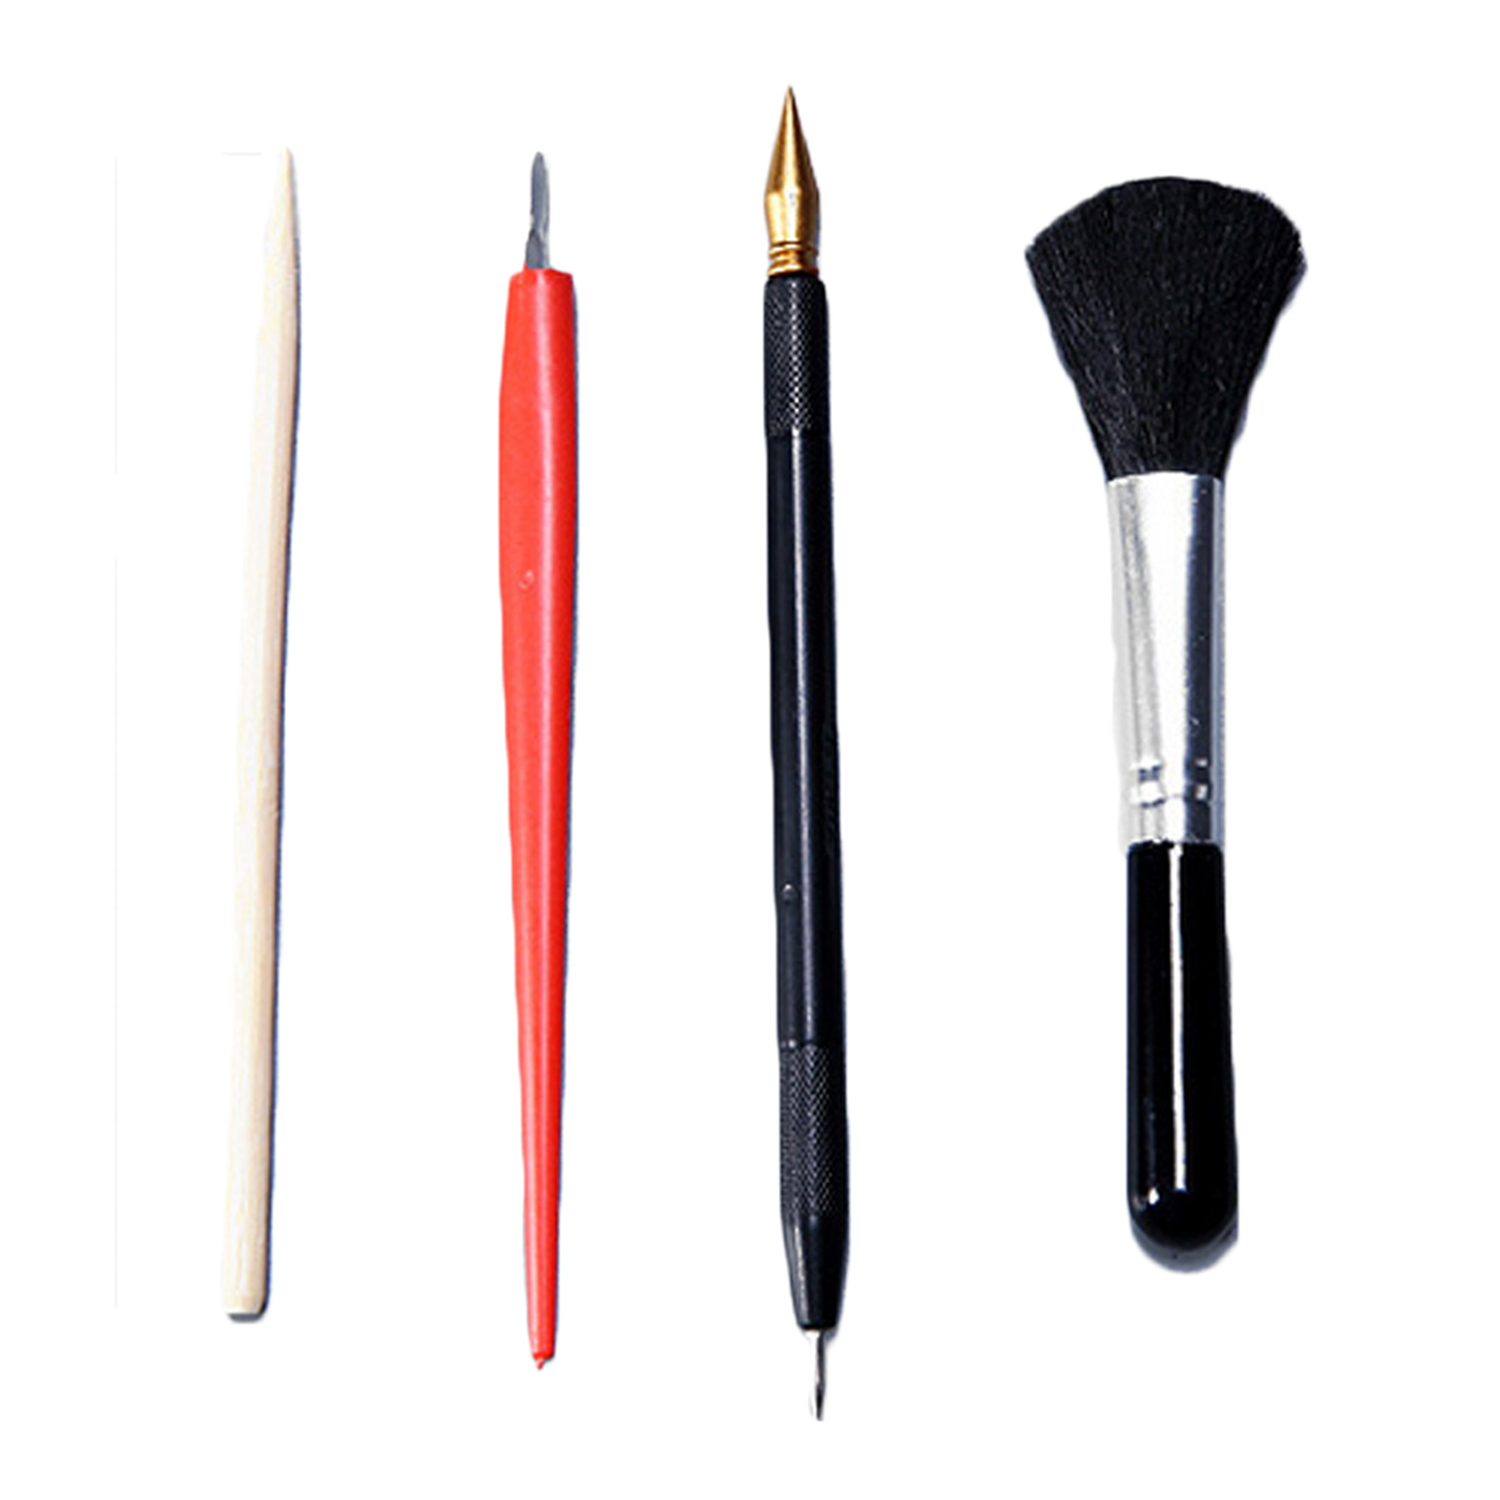 4Pcs Painting Drawing Scratch Arts Set With Stick Scraper Pen Black Brush For Scratch Sketch Art Papers Boards Tools DIY Gift